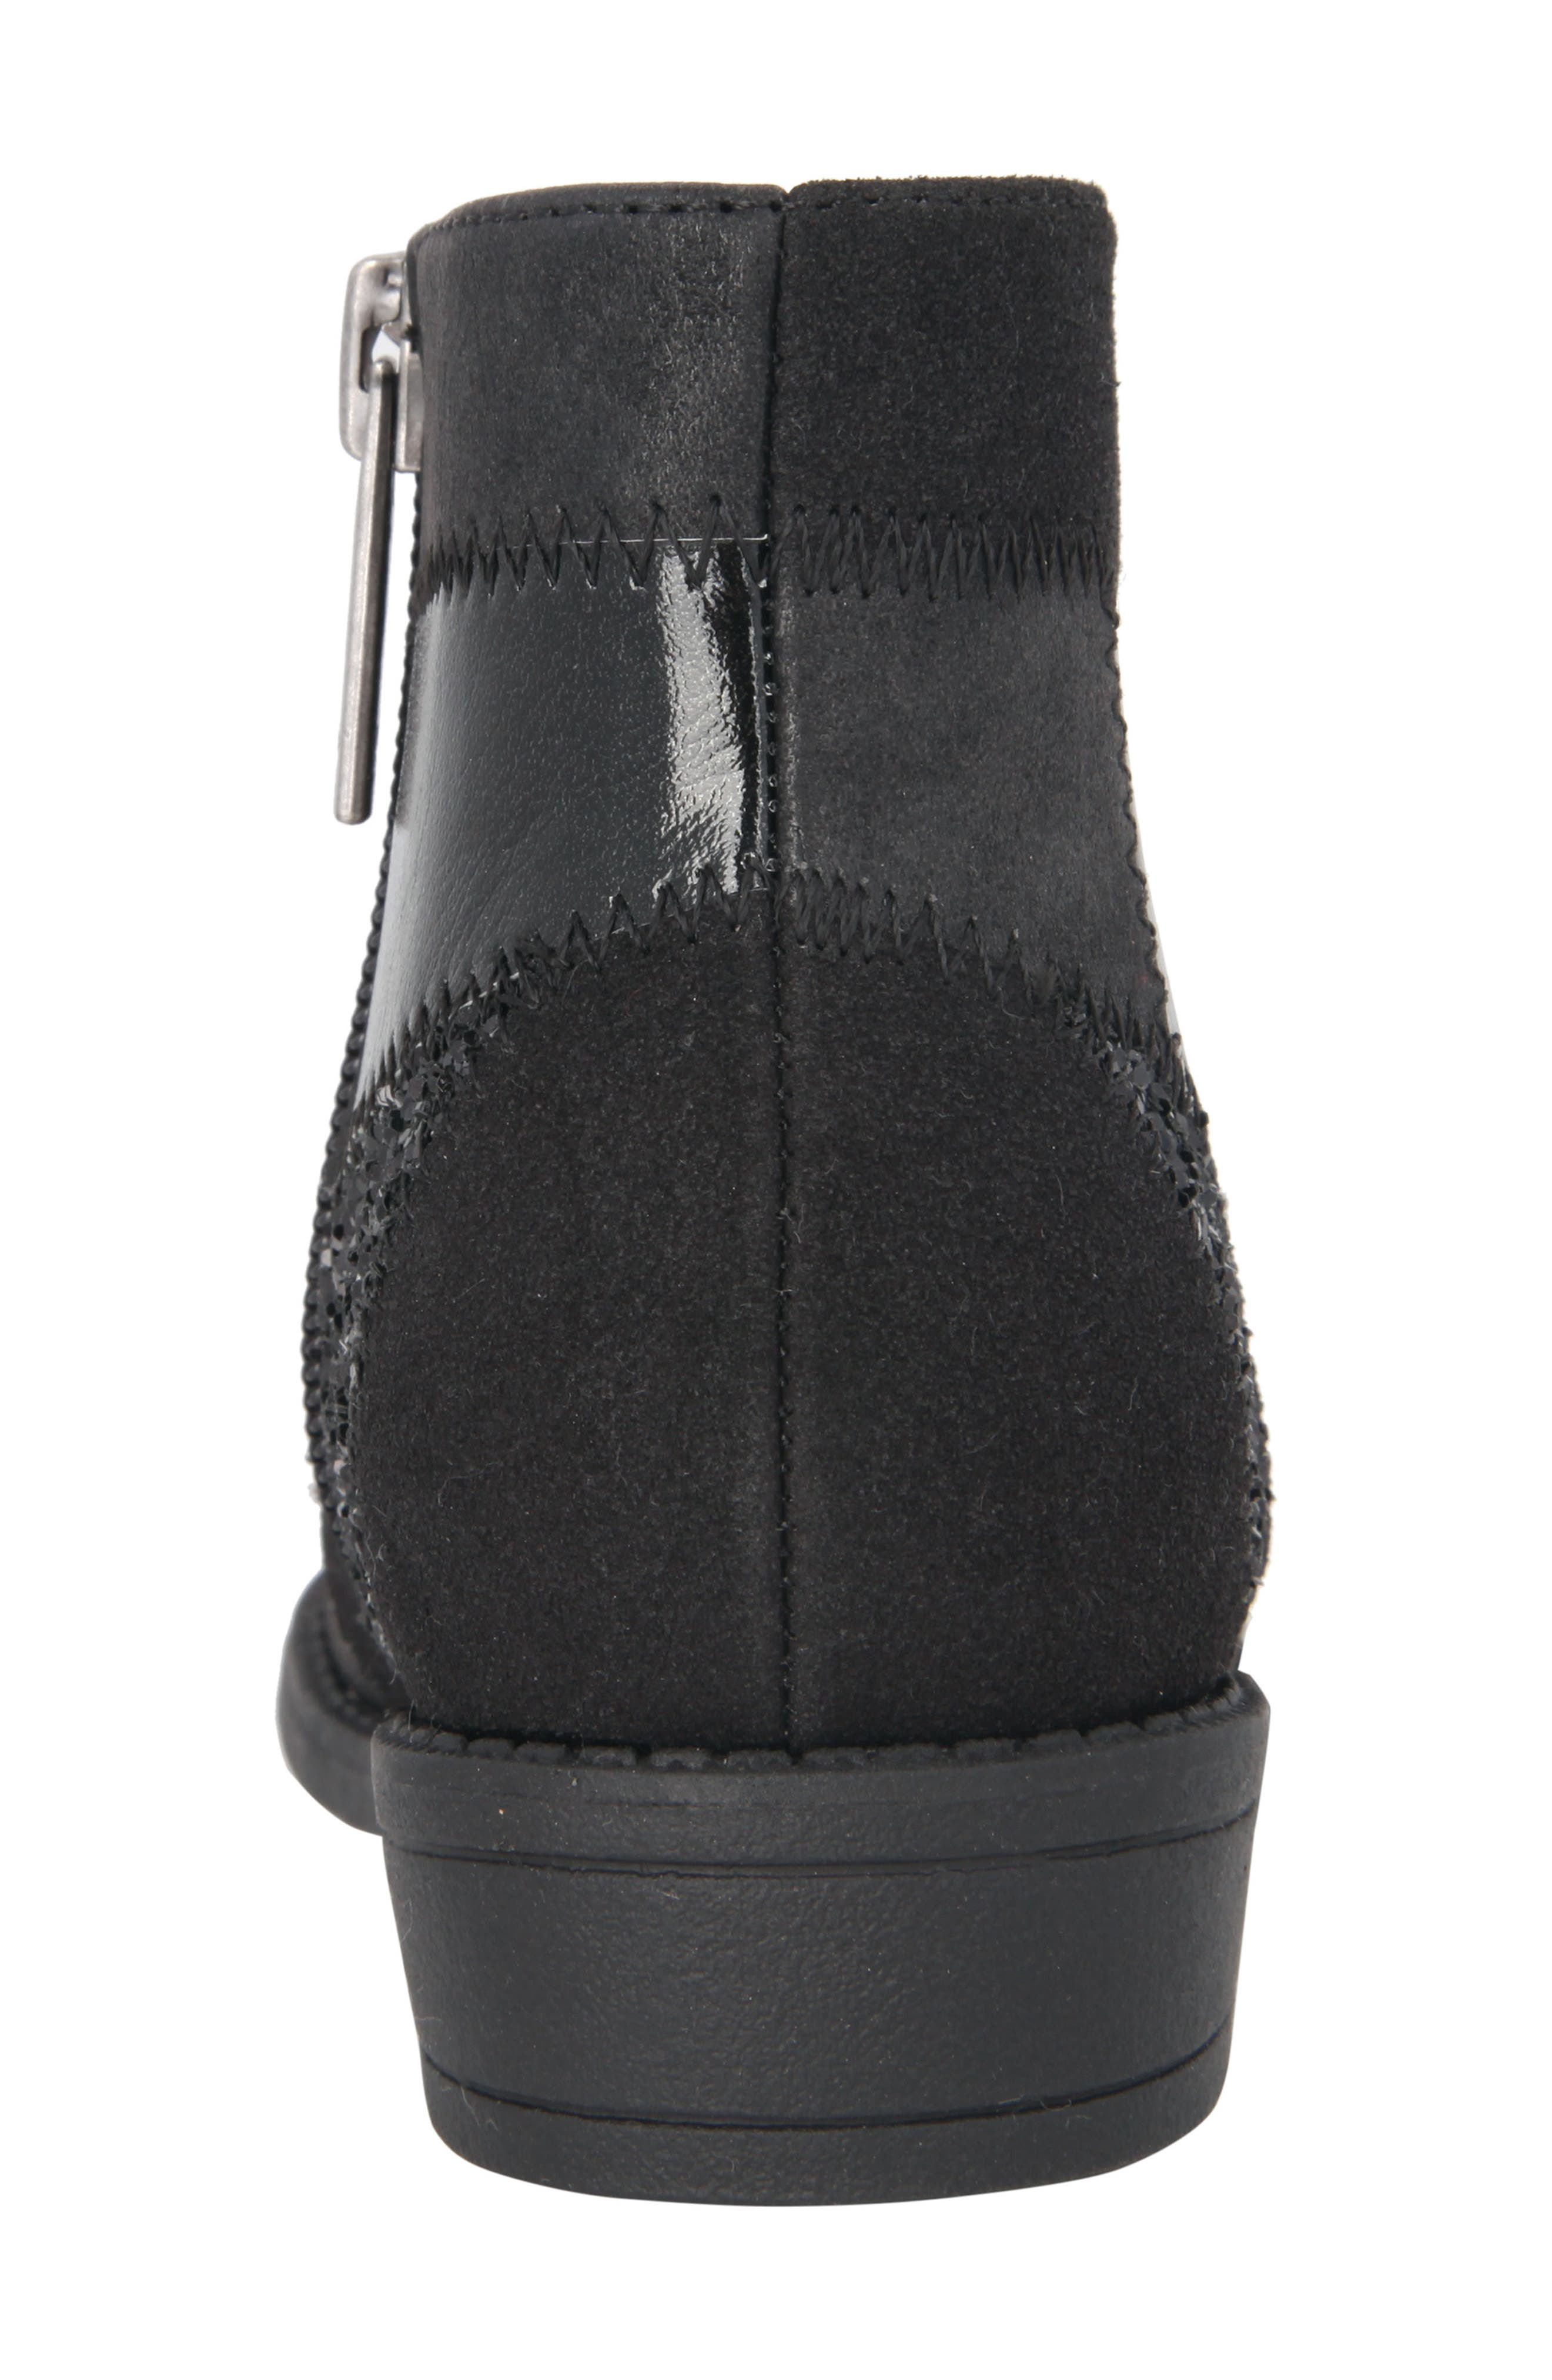 Ines Glittery Patchwork Bootie,                             Alternate thumbnail 7, color,                             Black Metallic/ Black Glitter